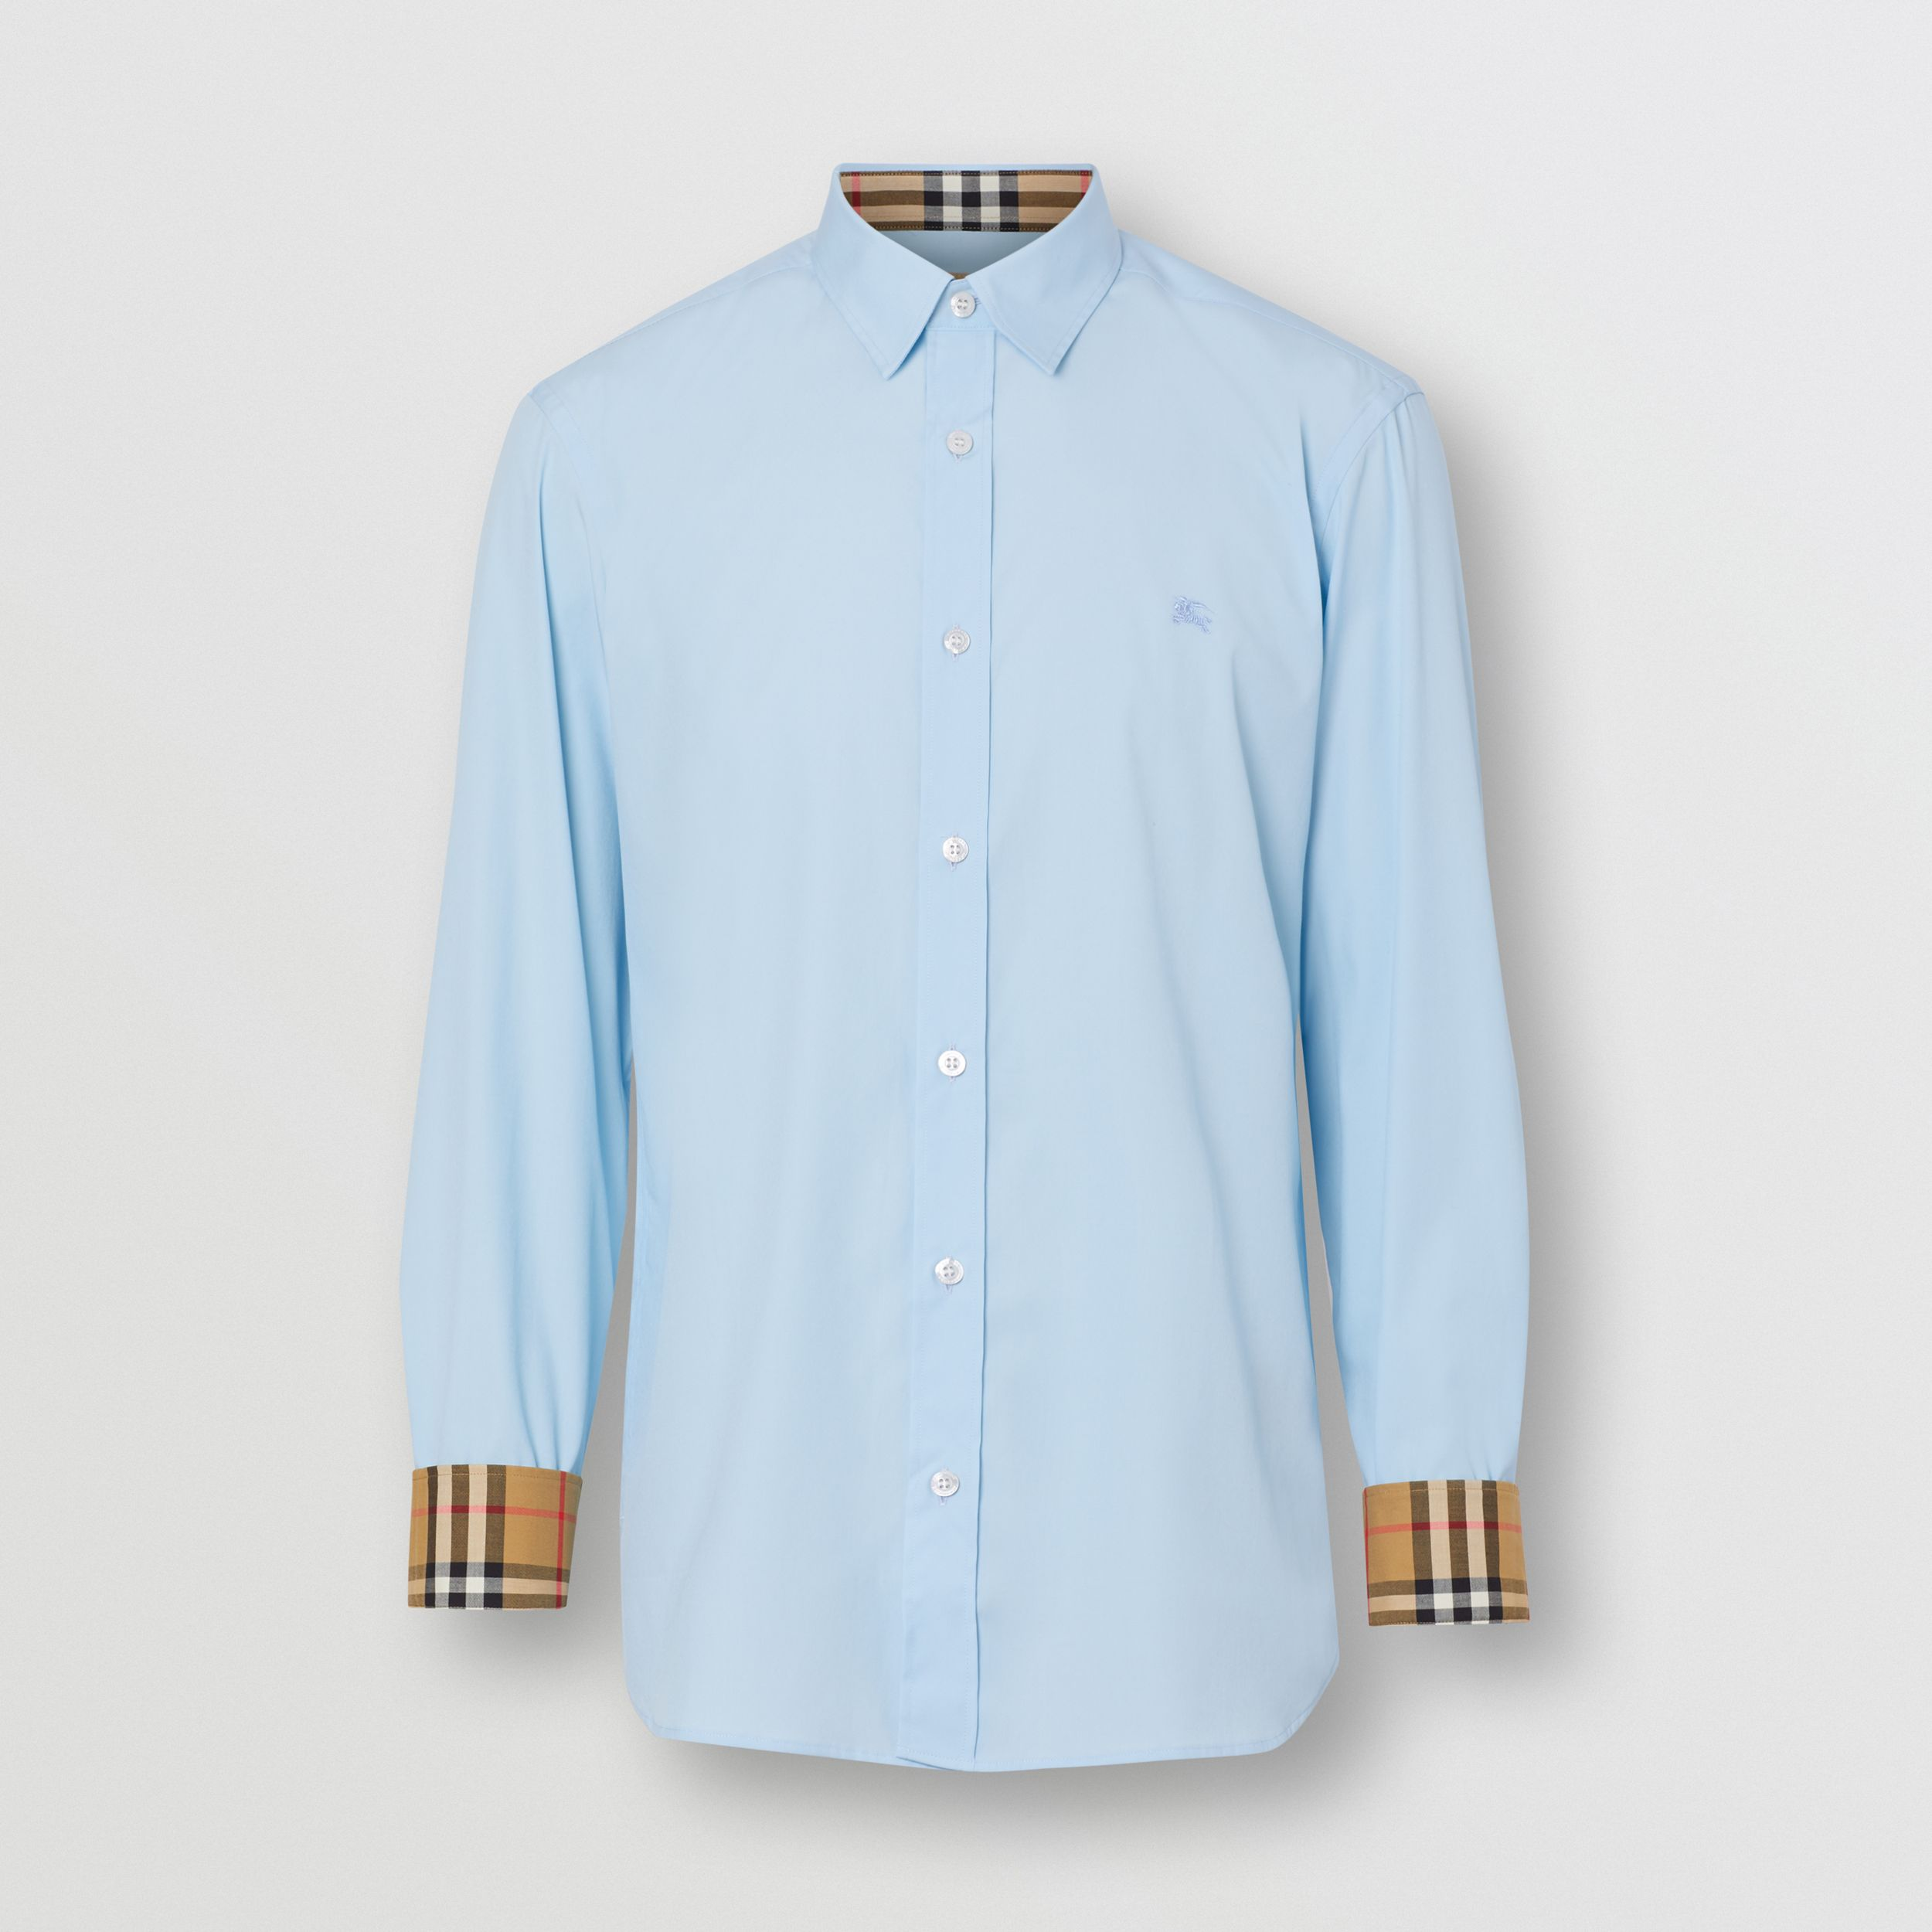 Stretch Cotton Poplin Shirt in Pale Blue - Men | Burberry United States - 4